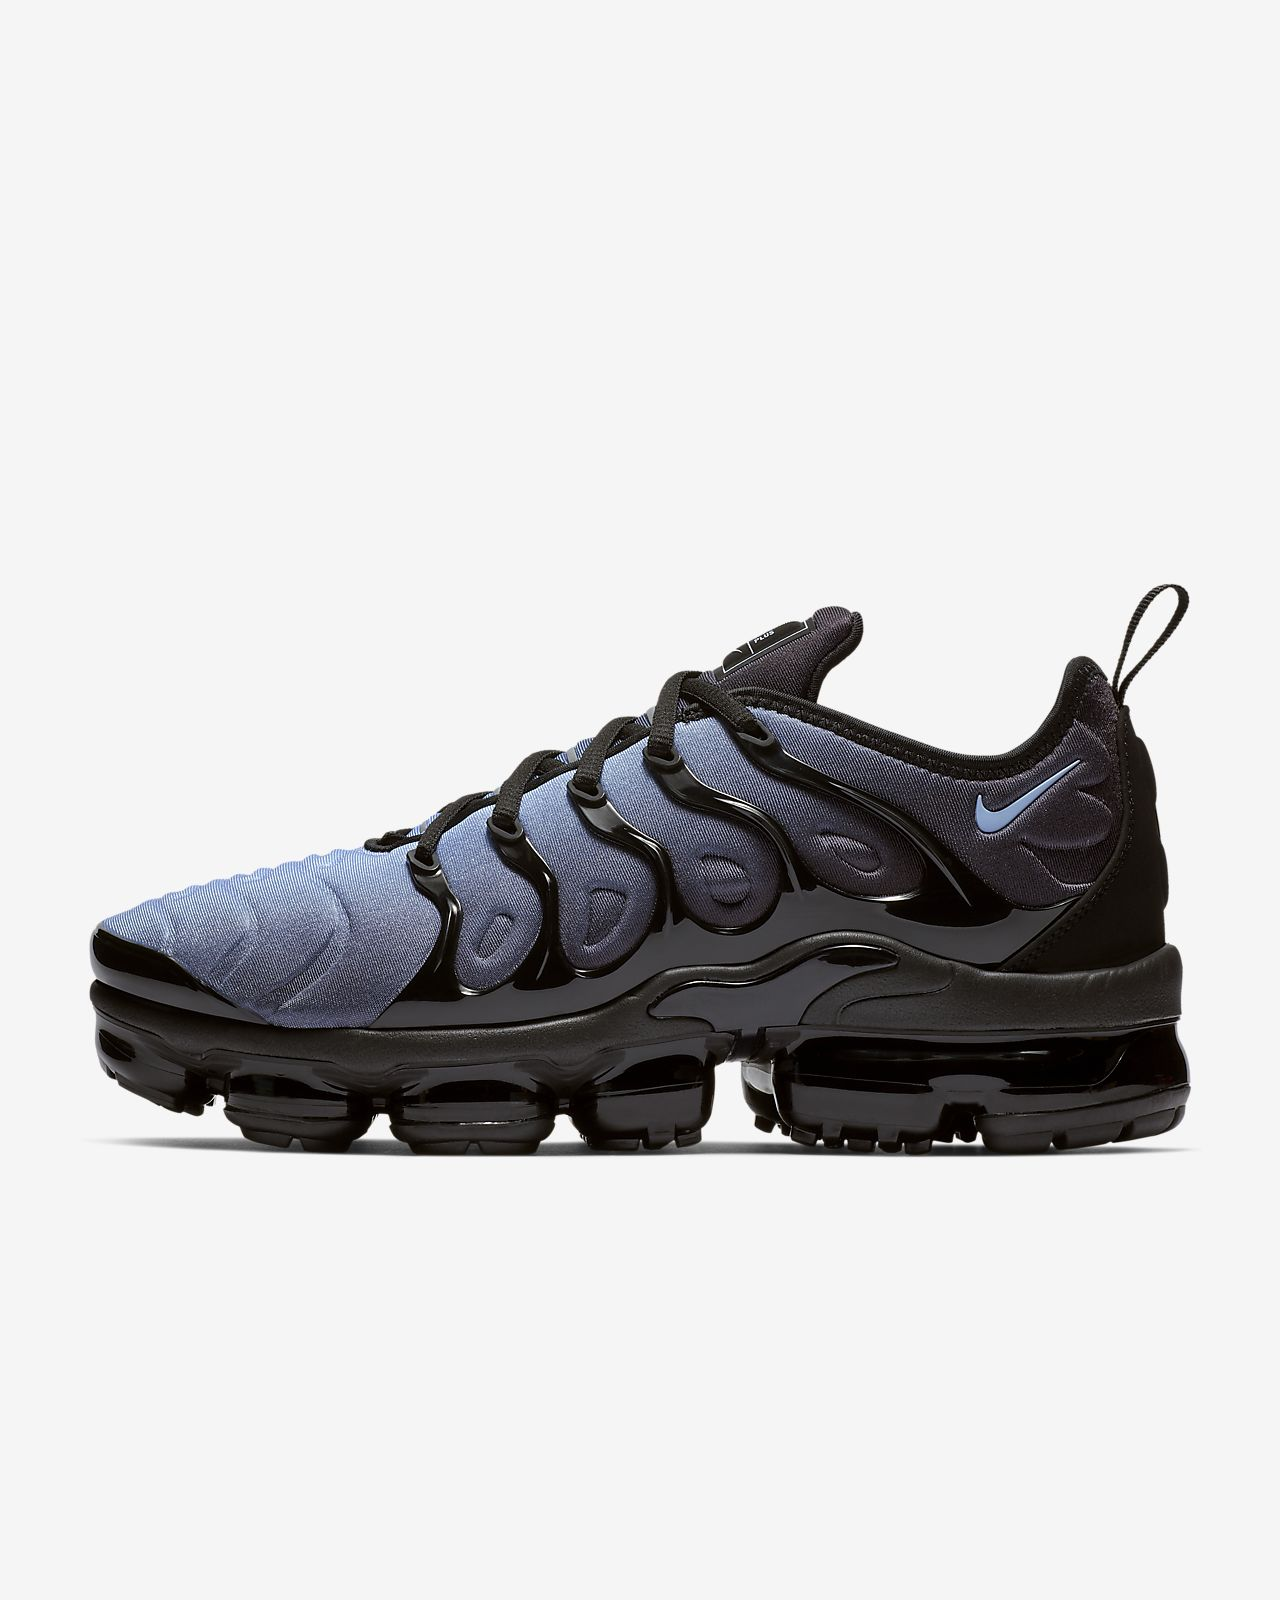 super popular 20d2e d662c ... Nike Air VaporMax Plus Men s Shoe